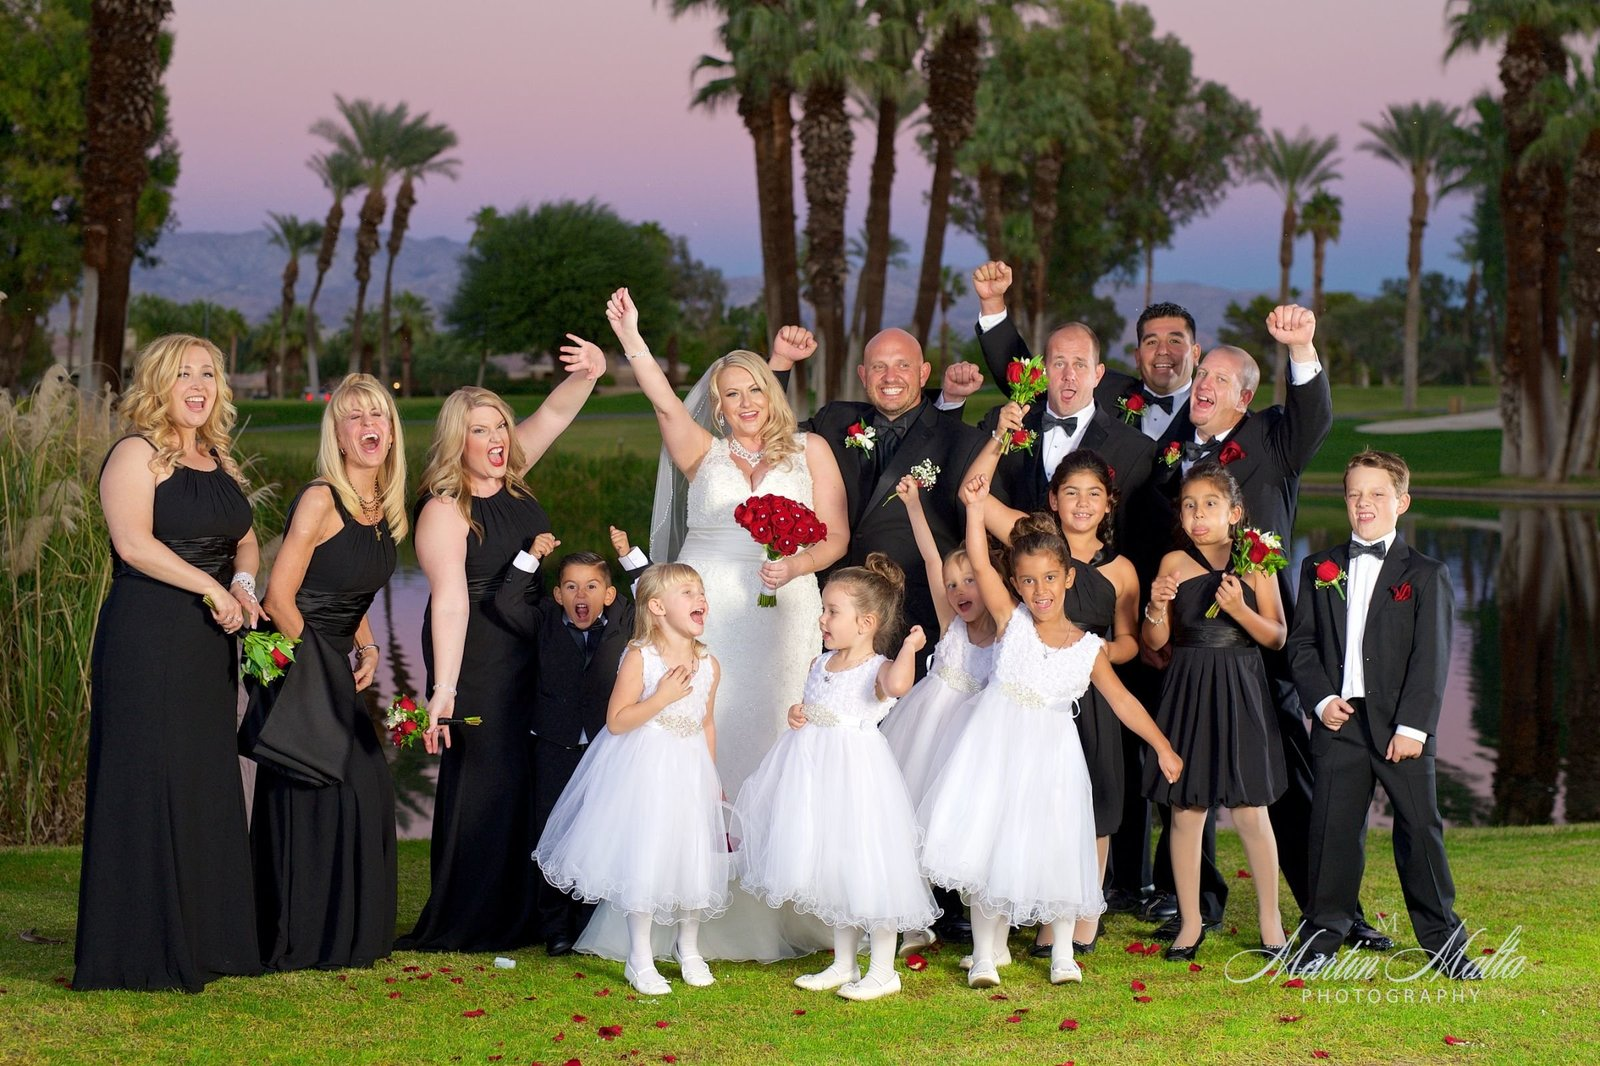 wedding images-photographer-wedding photography-palm springs wedding- (177)